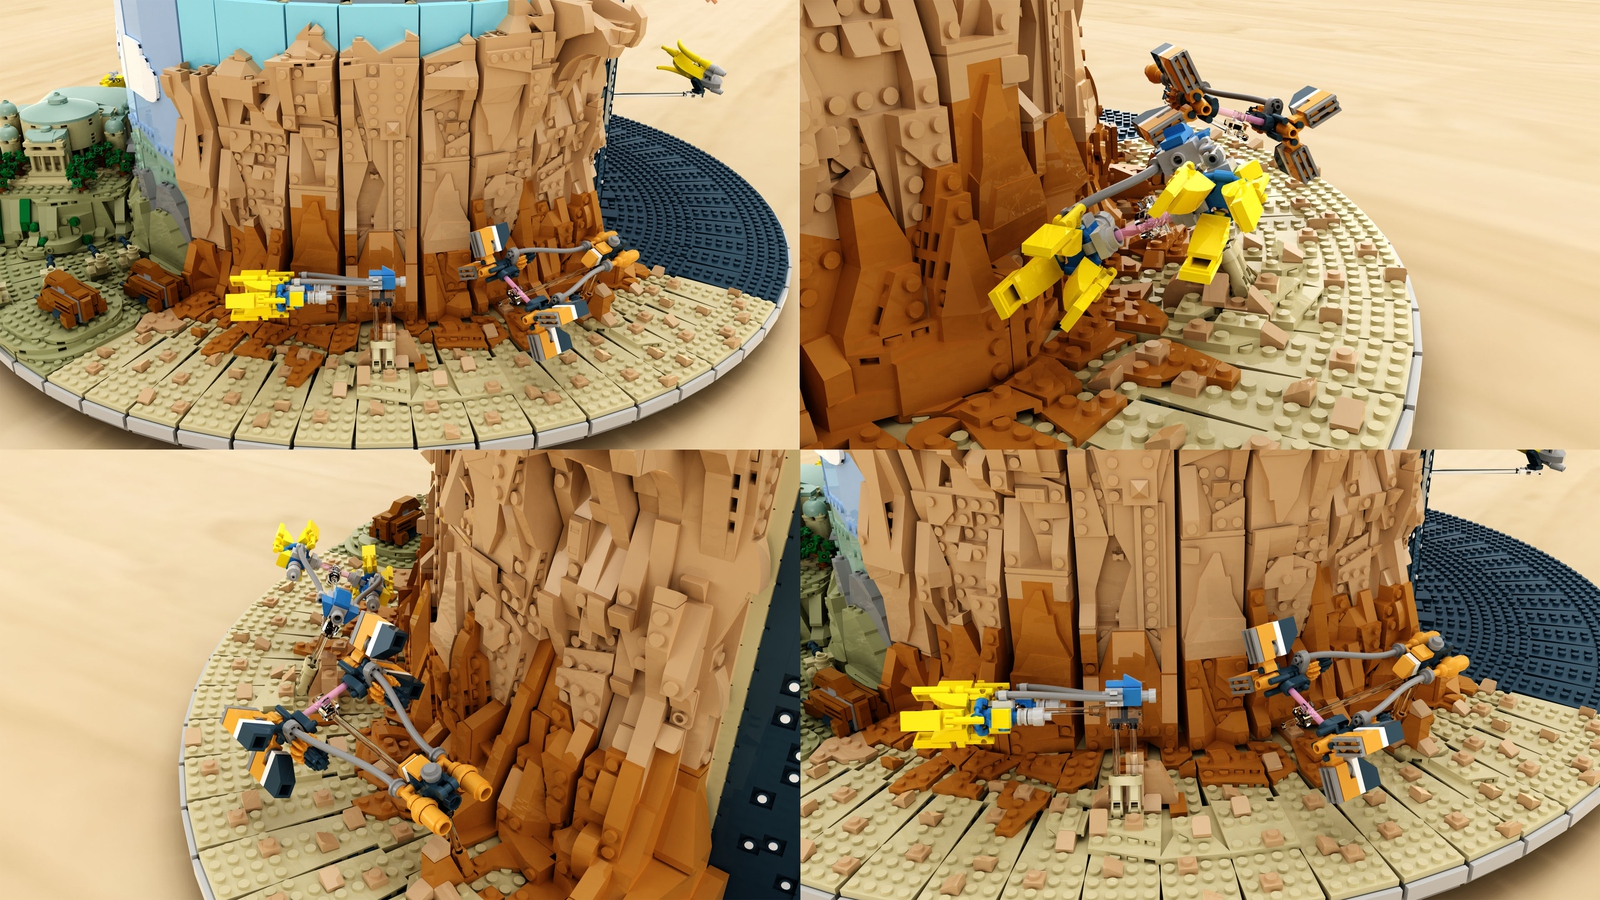 lego-star-wars-the-phantom-menace-diorama-podrace-krakenbrix-ideas zusammengebaut.com